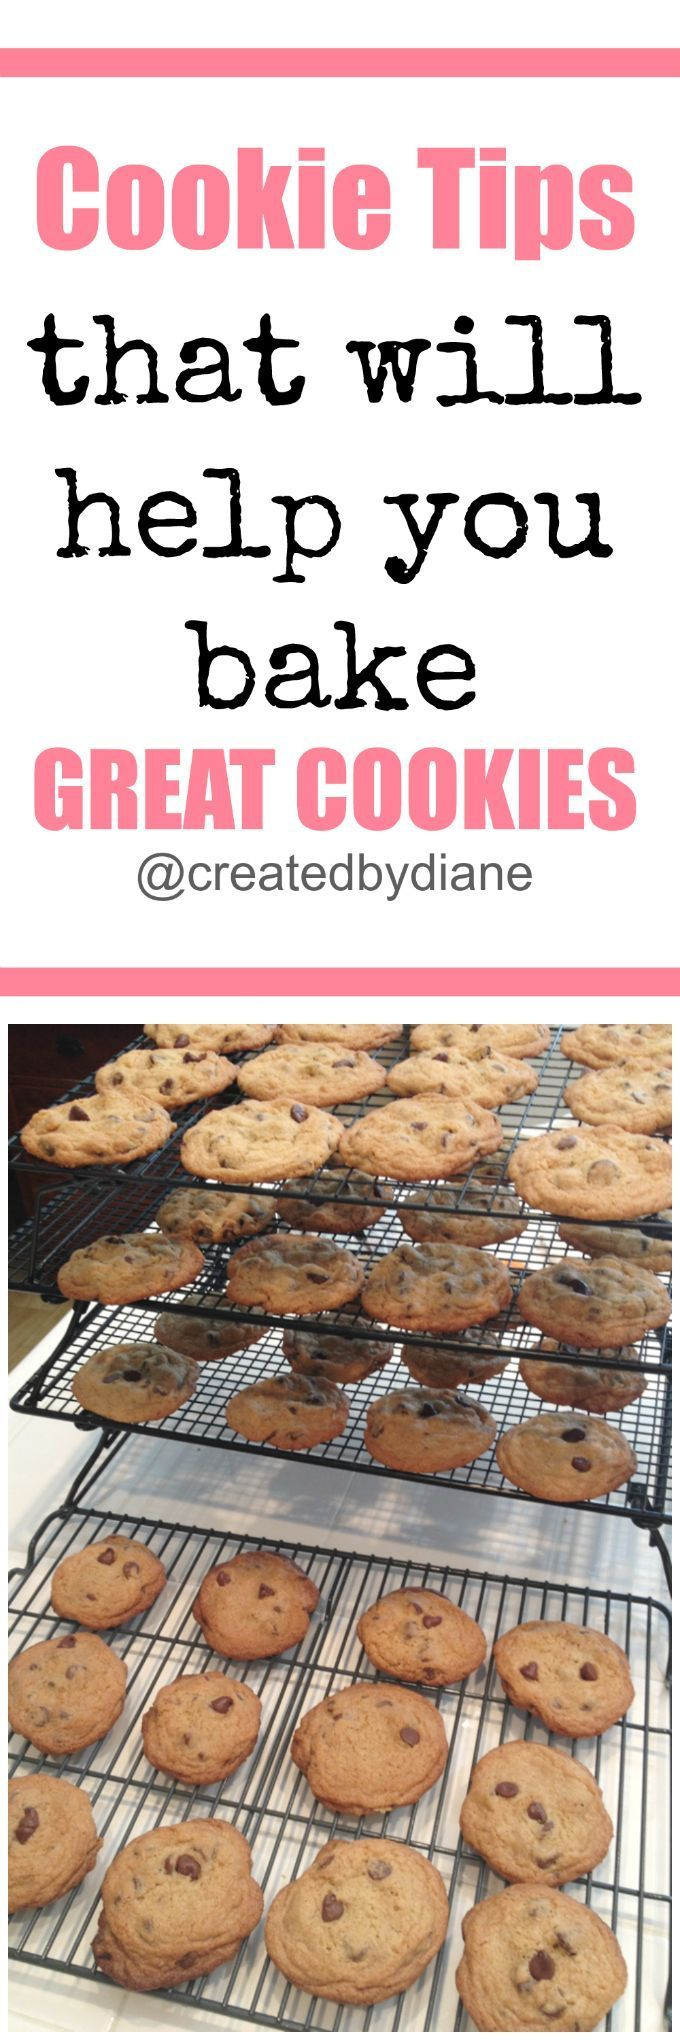 cookie-tips-from-www-createdby-diane-com